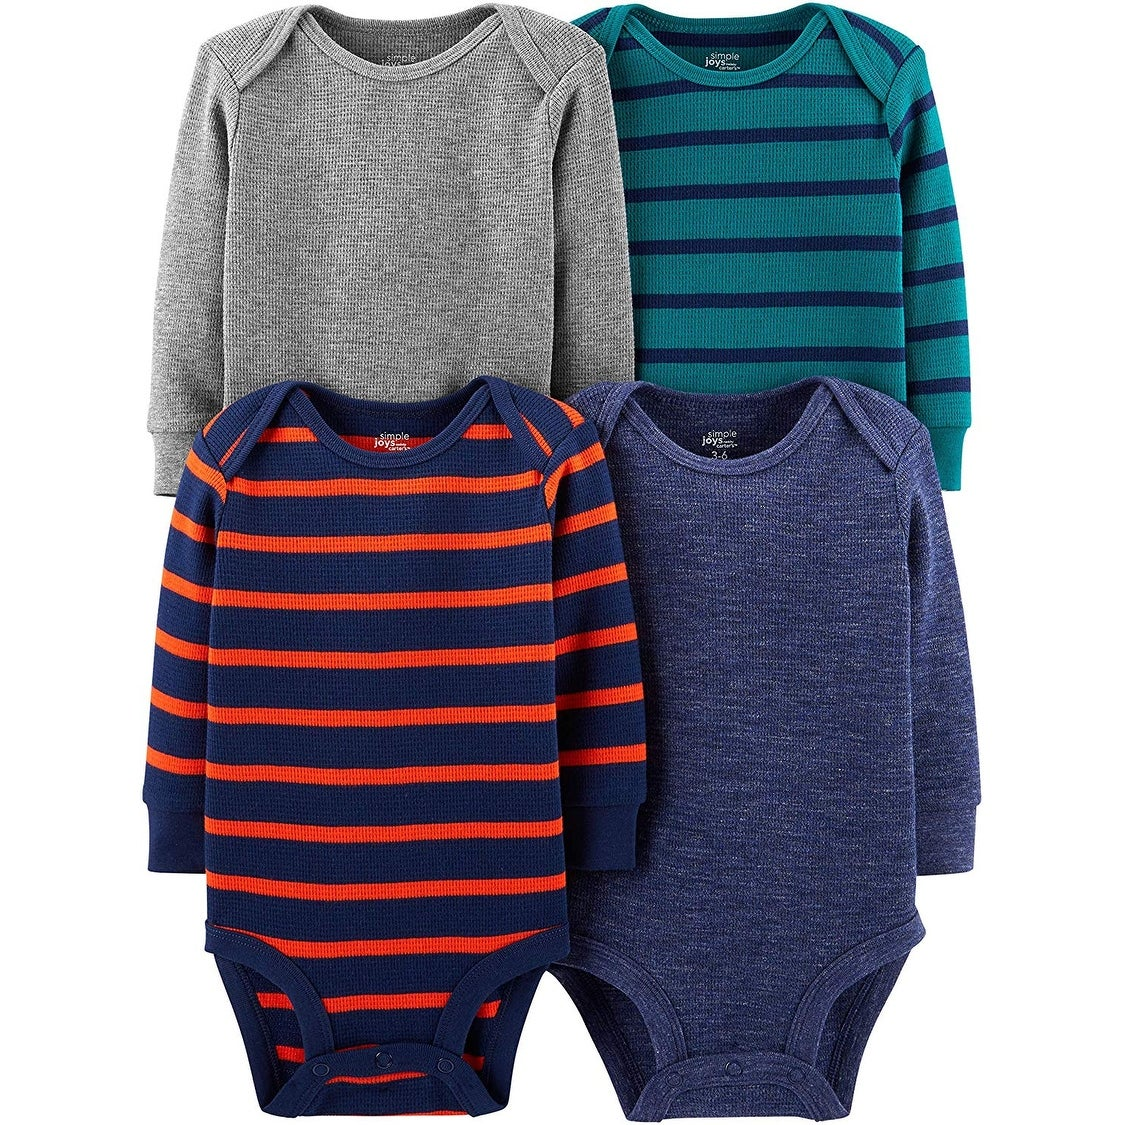 Simple Joys by Carters Baby-Jungen 4-Pack Soft Thermal Long Sleeve Bodysuits 4er-Pack